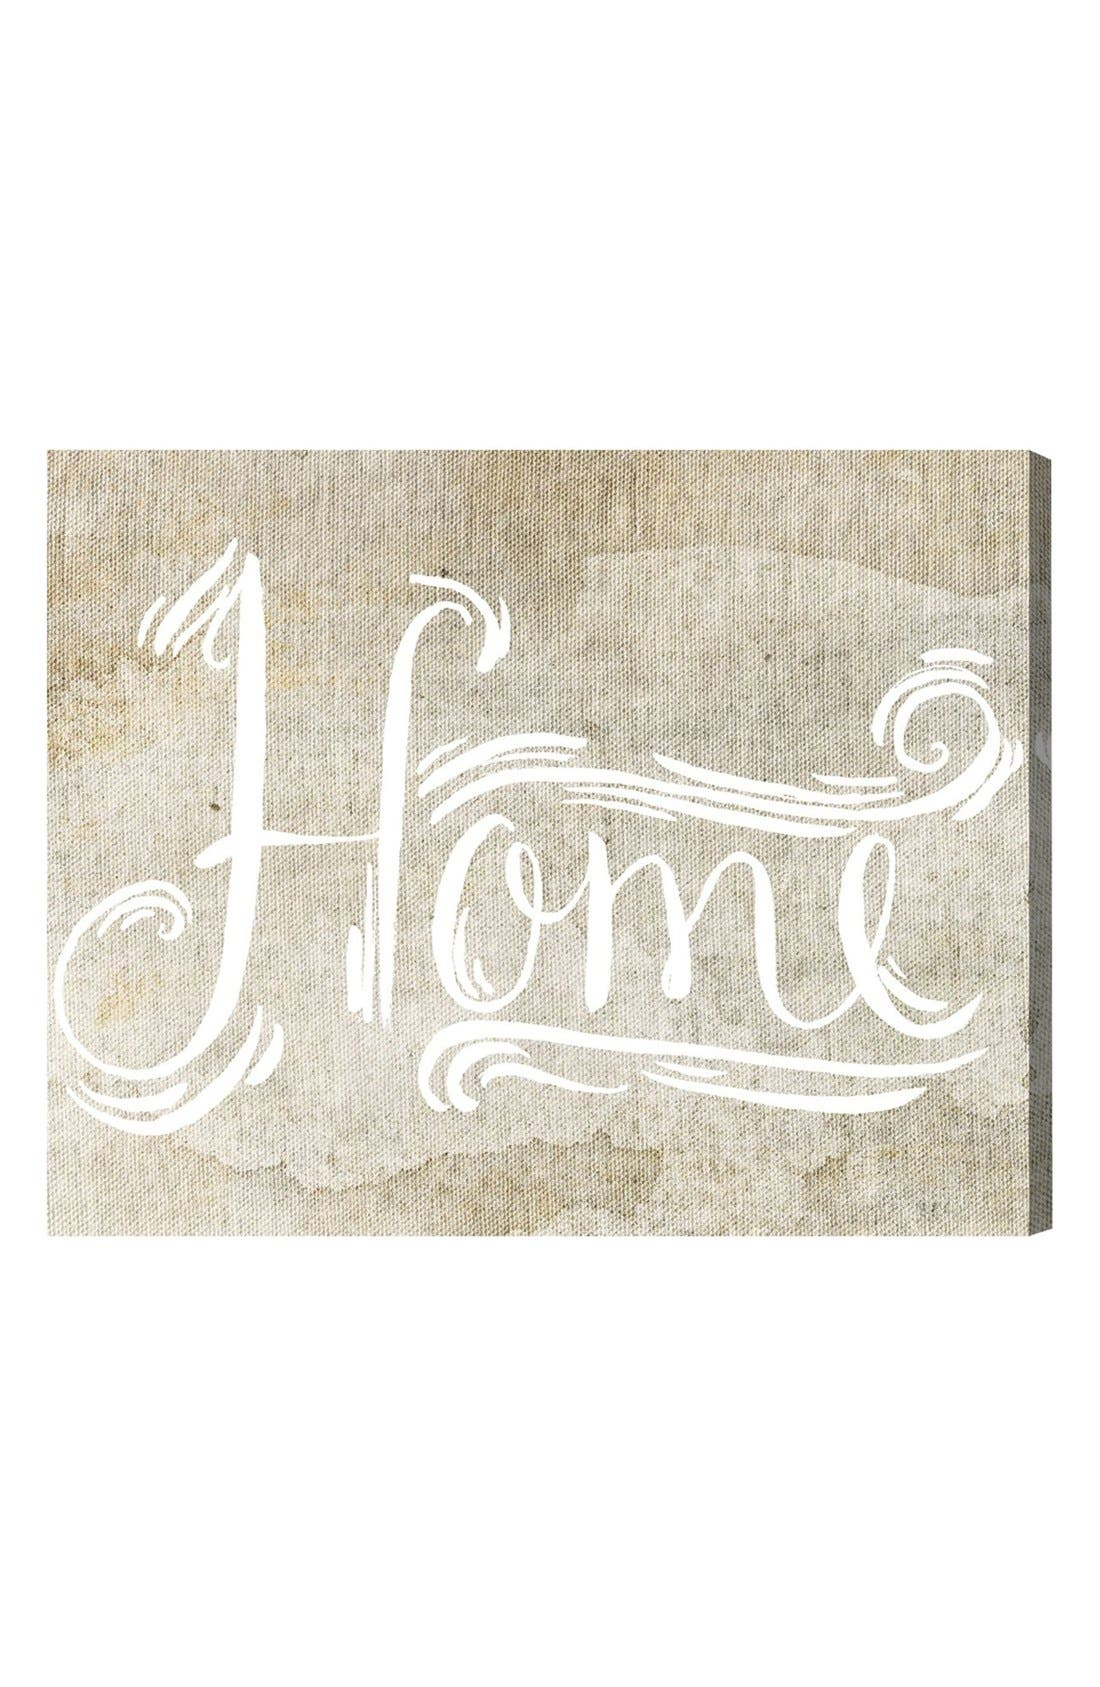 'Home Sweet Home' Hand Stretched Canvas Wall Art,                         Main,                         color, 250